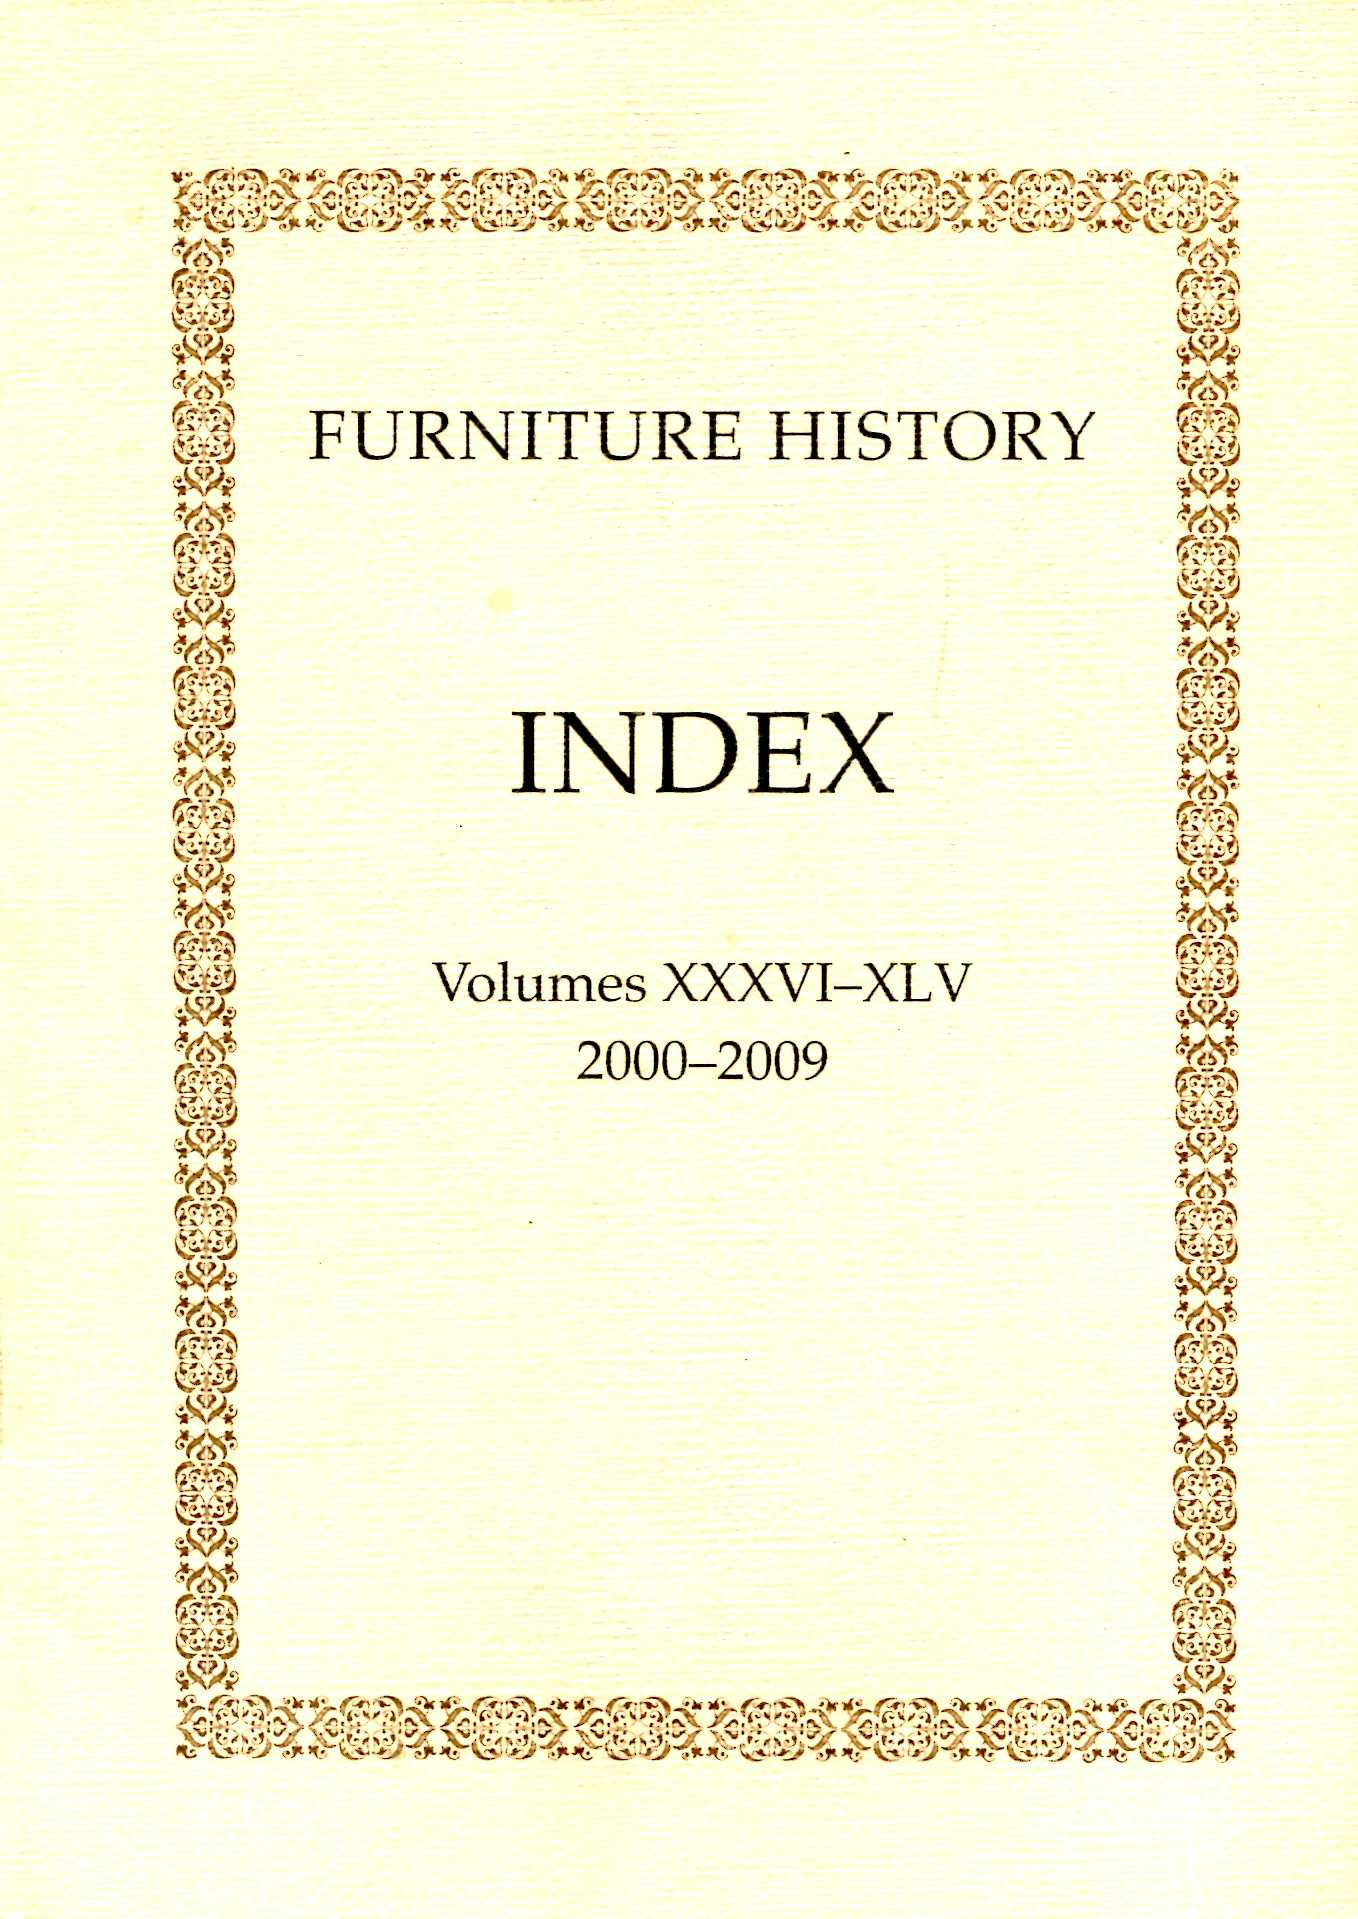 Image for Furniture History : the Journal of the Furniture History Society Index volumes XXXVI-XLV 2000-2009